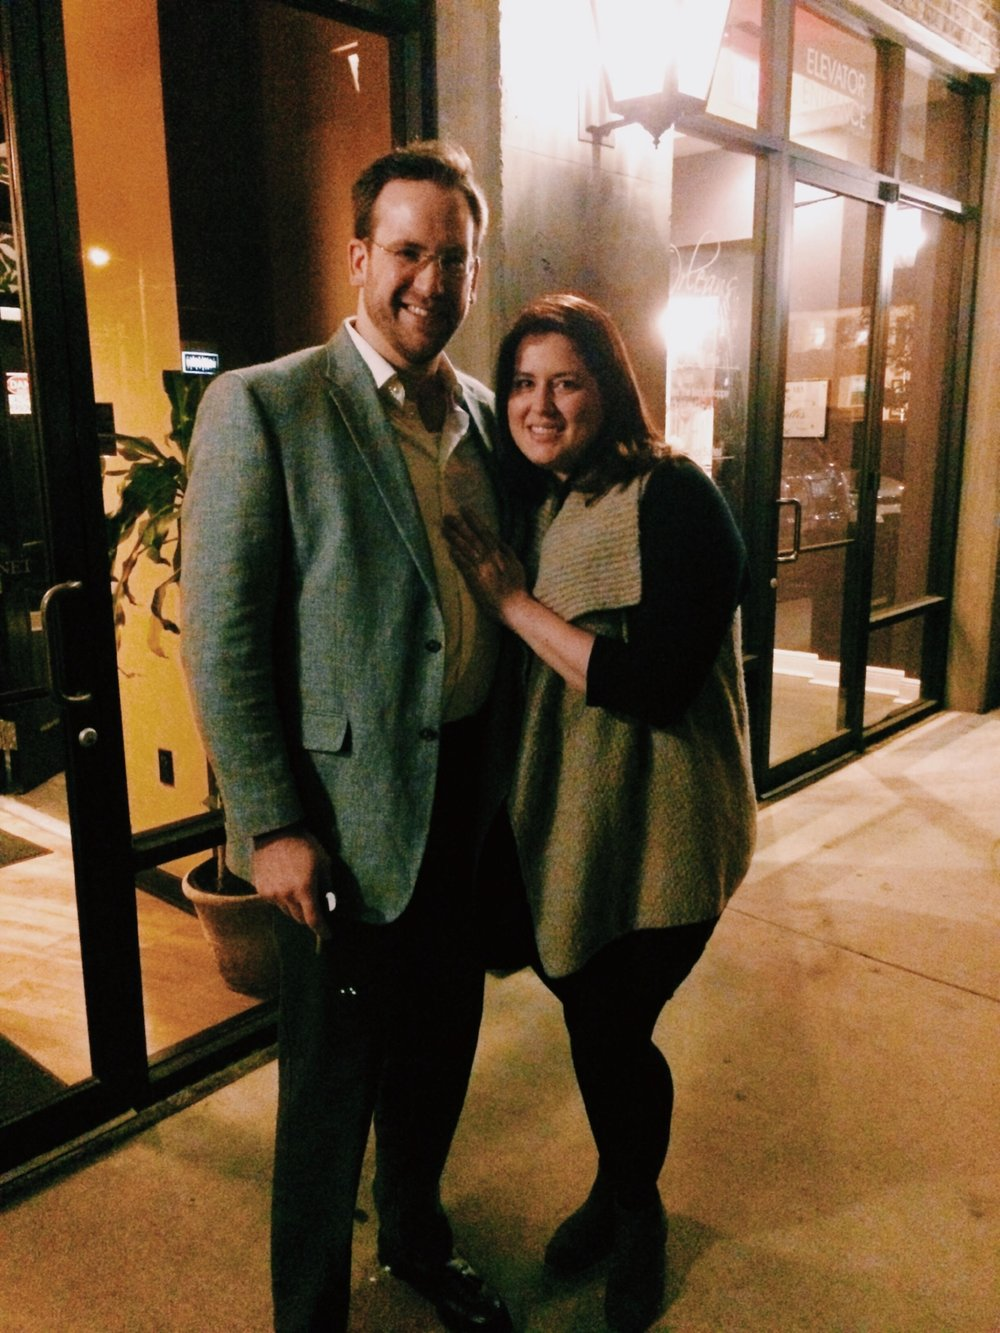 A little blurry, but a date night photo nonetheless!